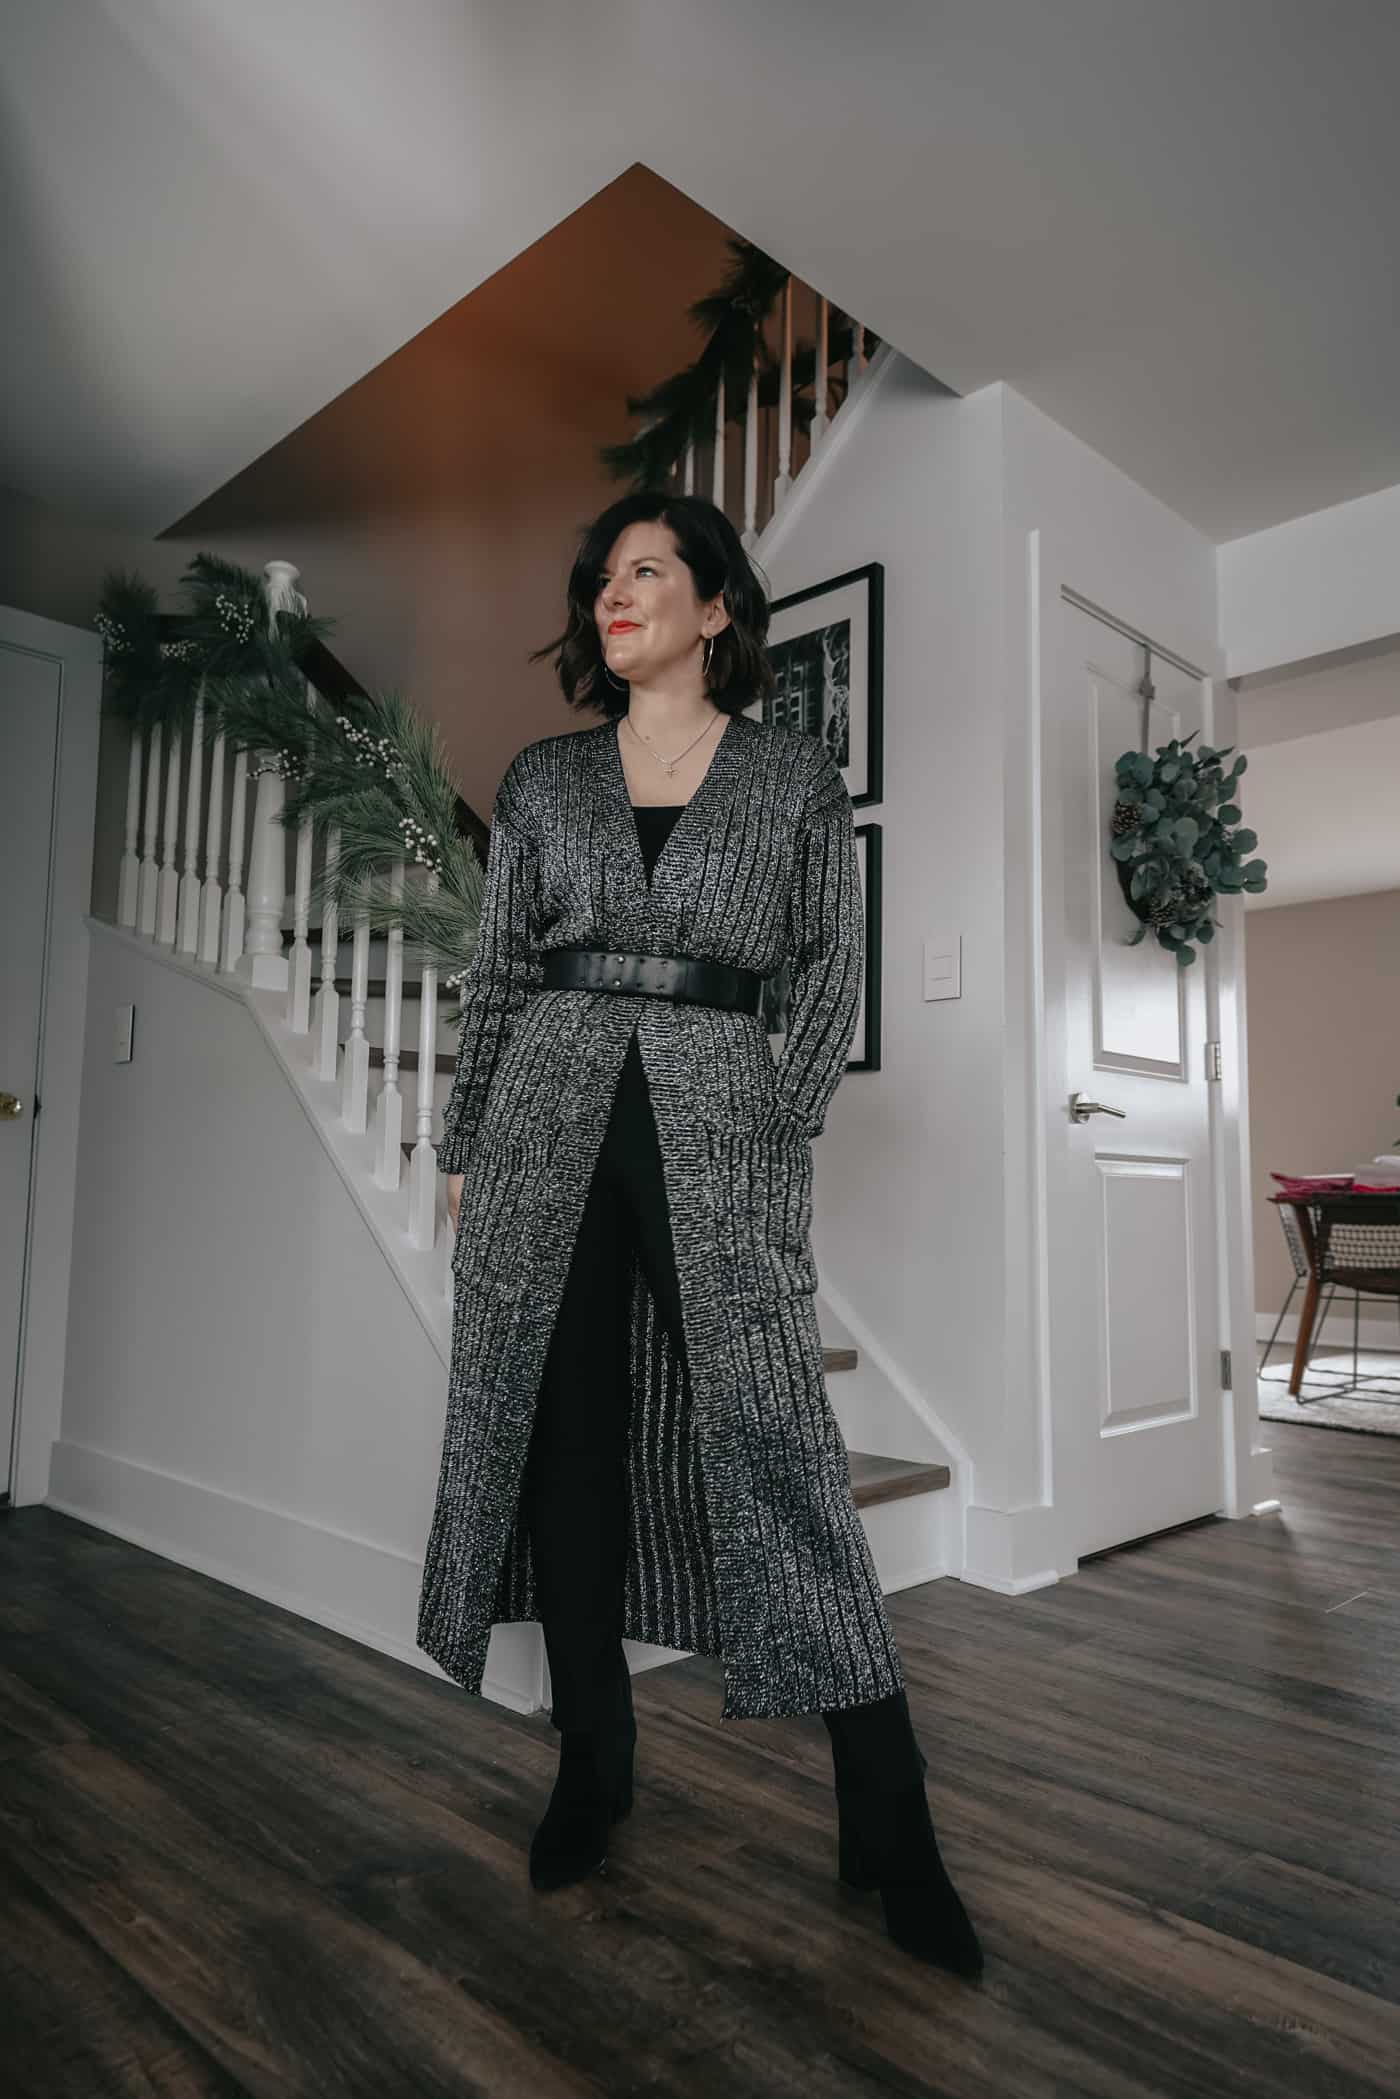 A Lily Love Affair showing you 5 ways to wear womens black pants. Wearing long grey cardigan, how to belt a cardigan, black ankle boots, work outfit, petite black pants, fall outfit ideas, what to wear to work, black pants to work, what to wear to work